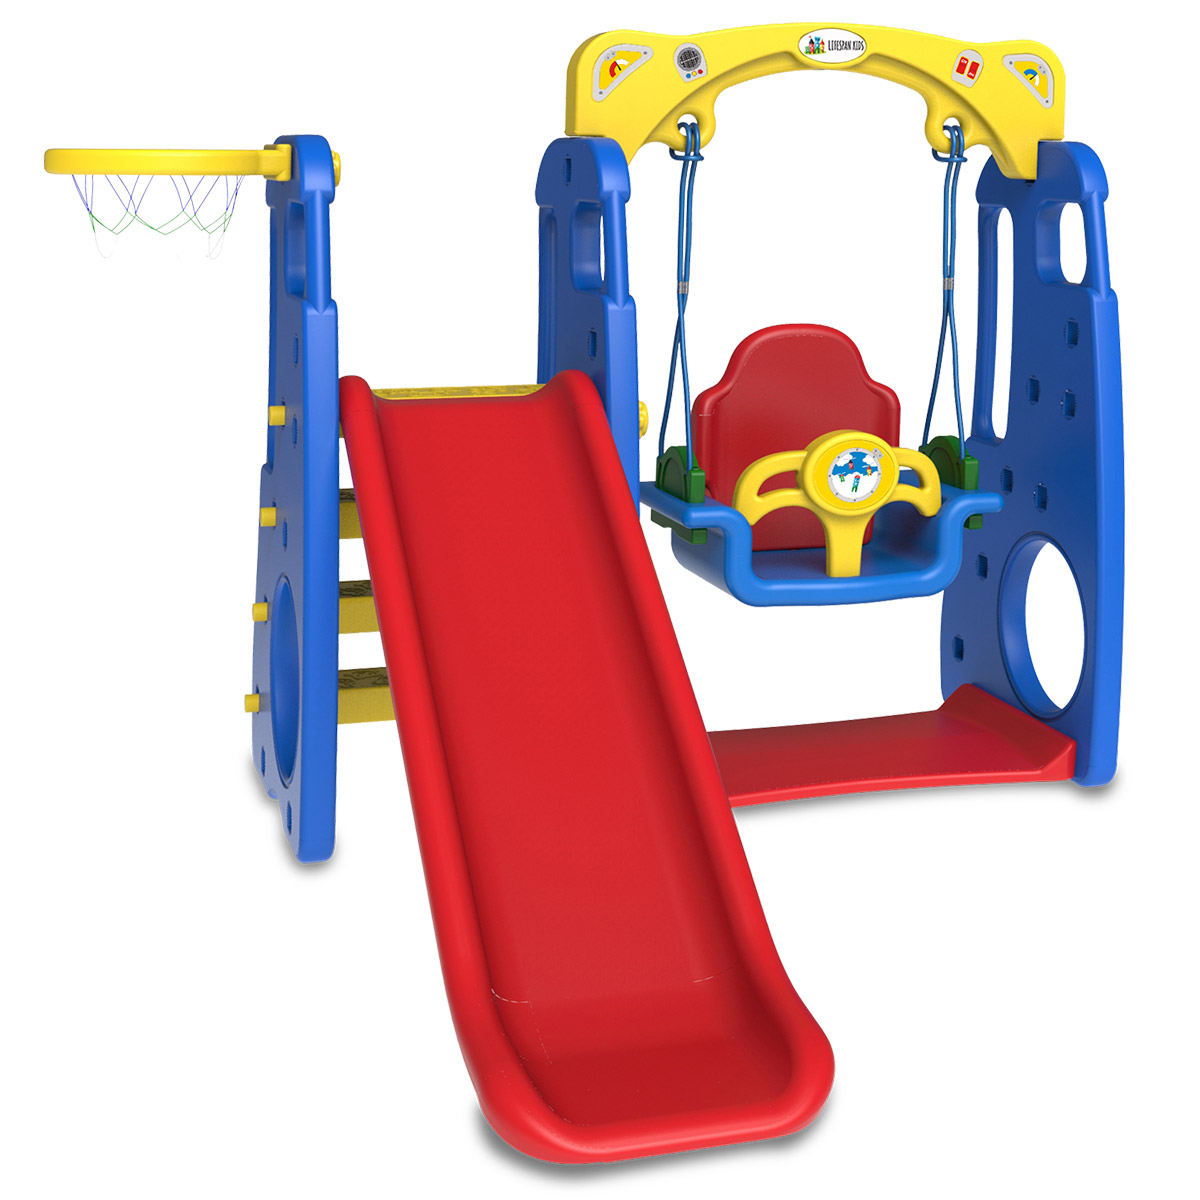 ruby 4 in 1 swing slide outdoor play fun for children. Black Bedroom Furniture Sets. Home Design Ideas